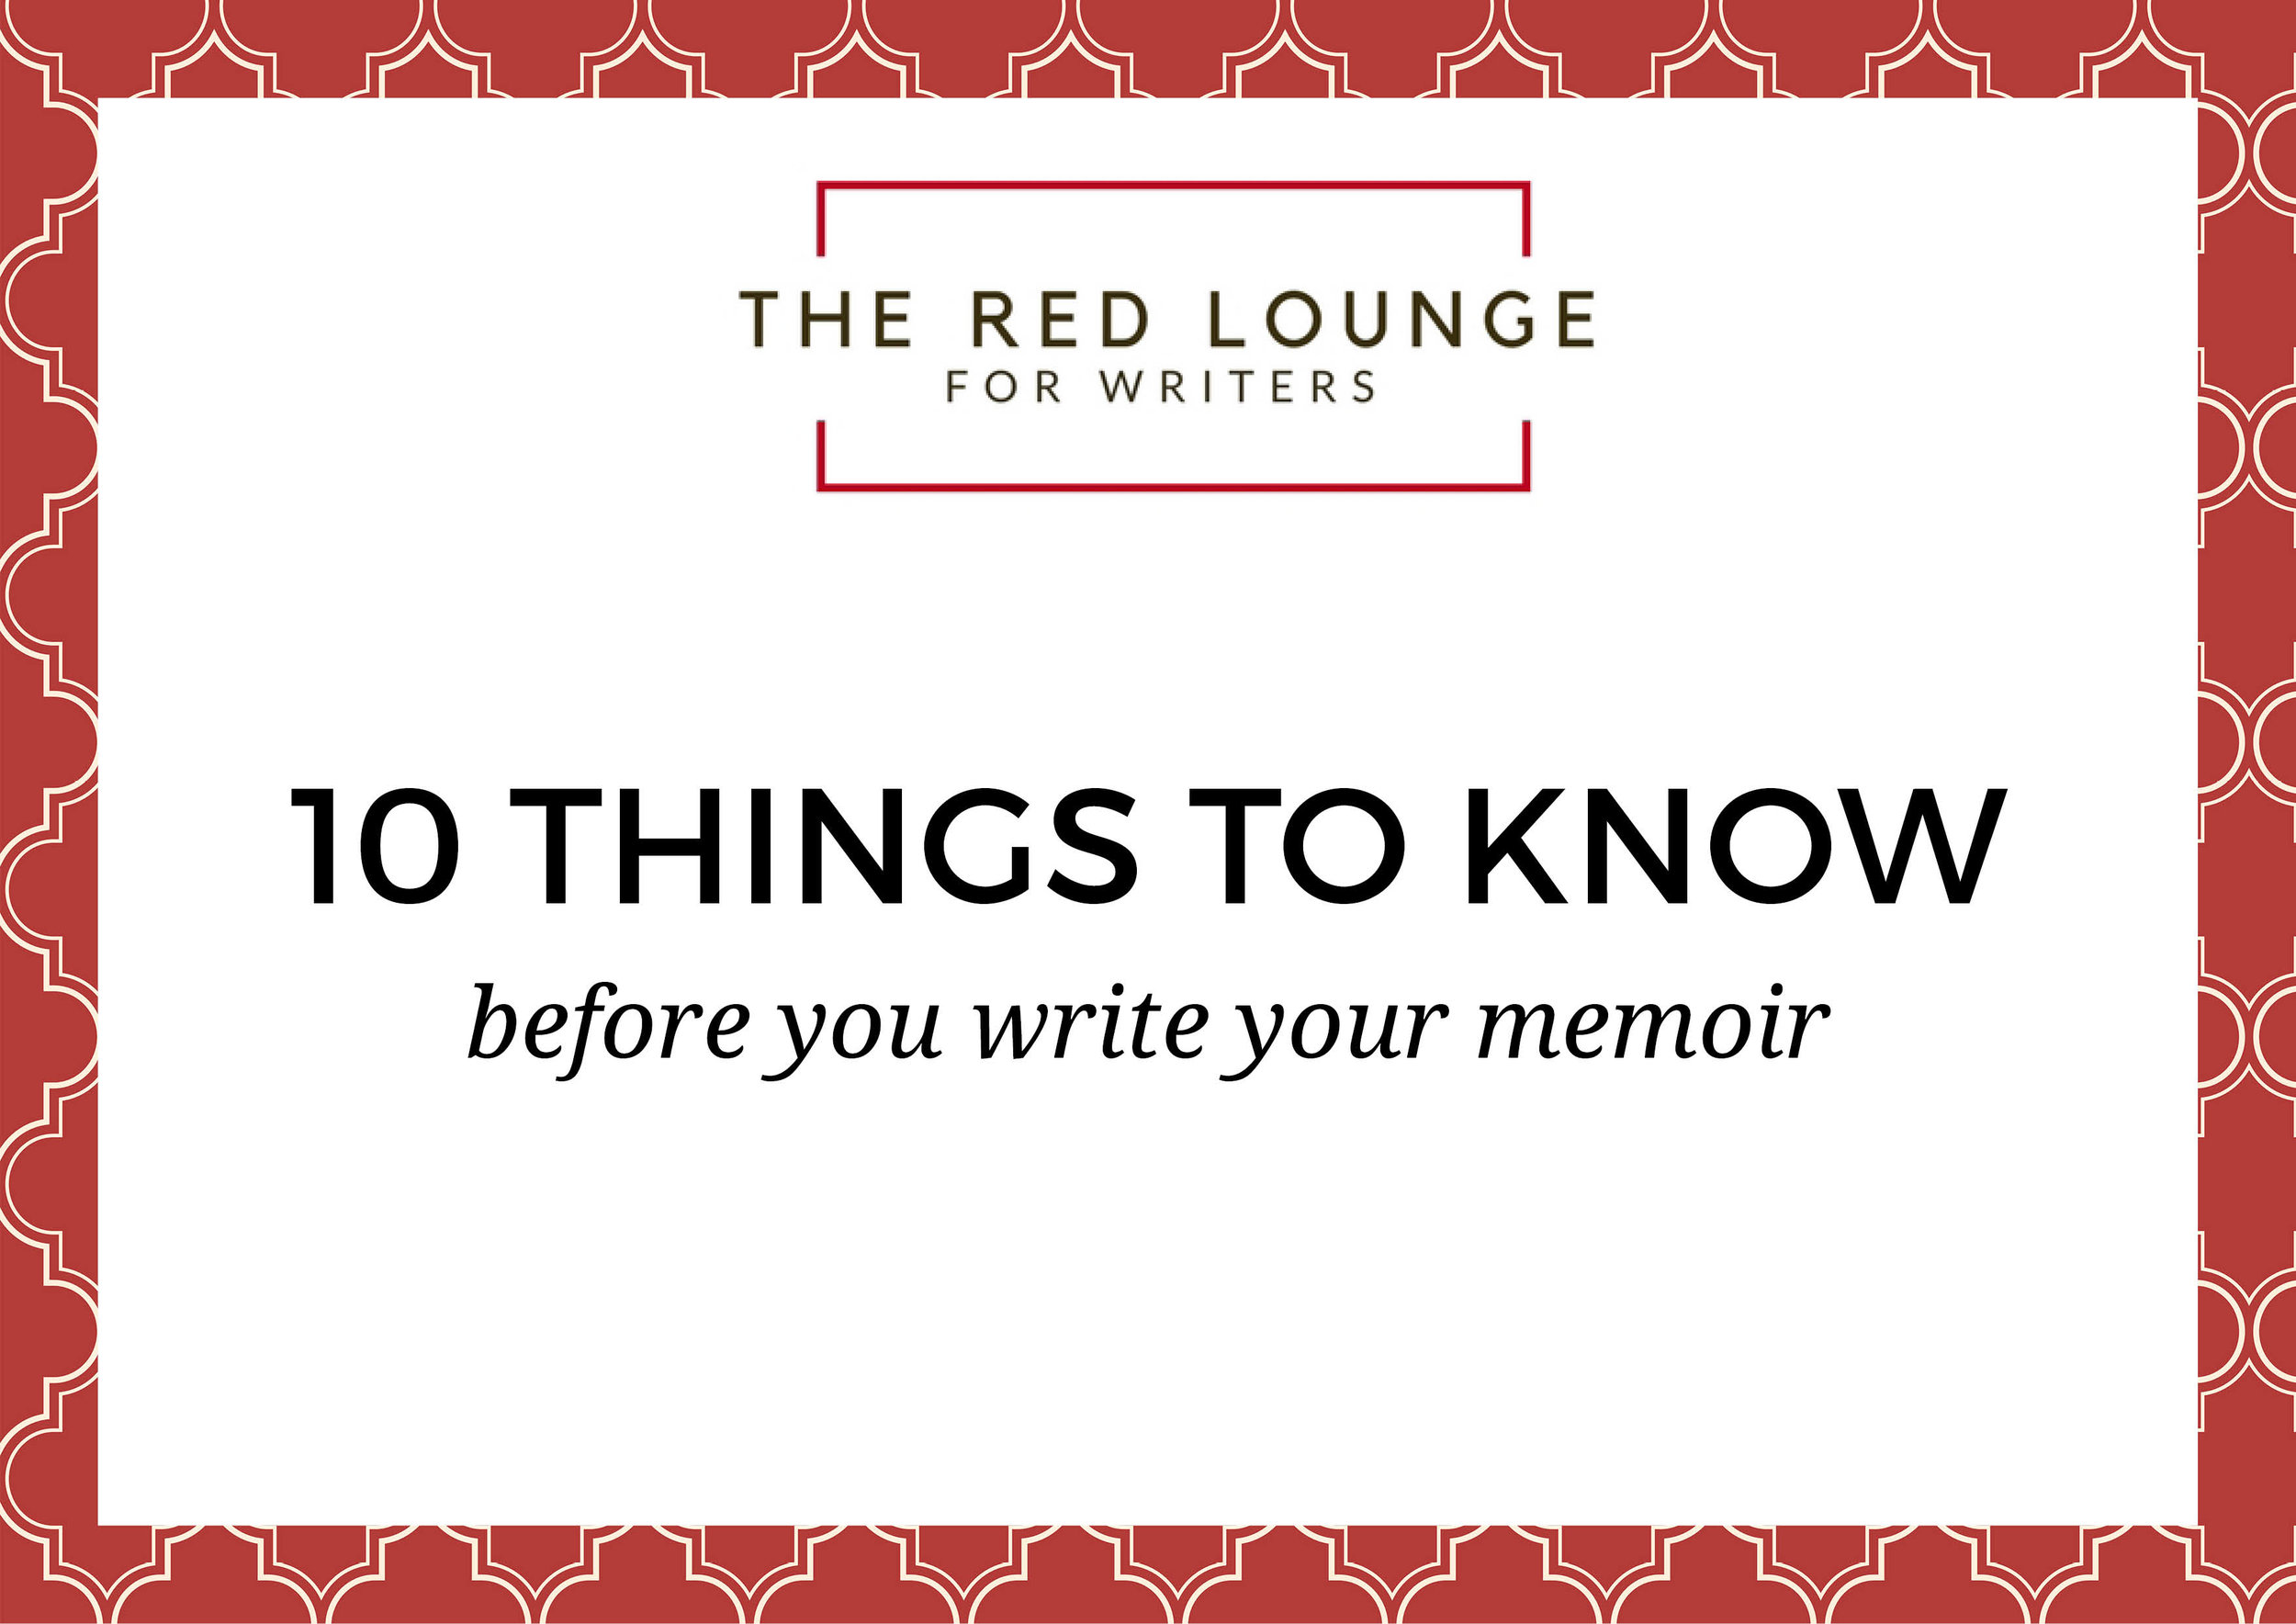 10 things to know before you write your memoir